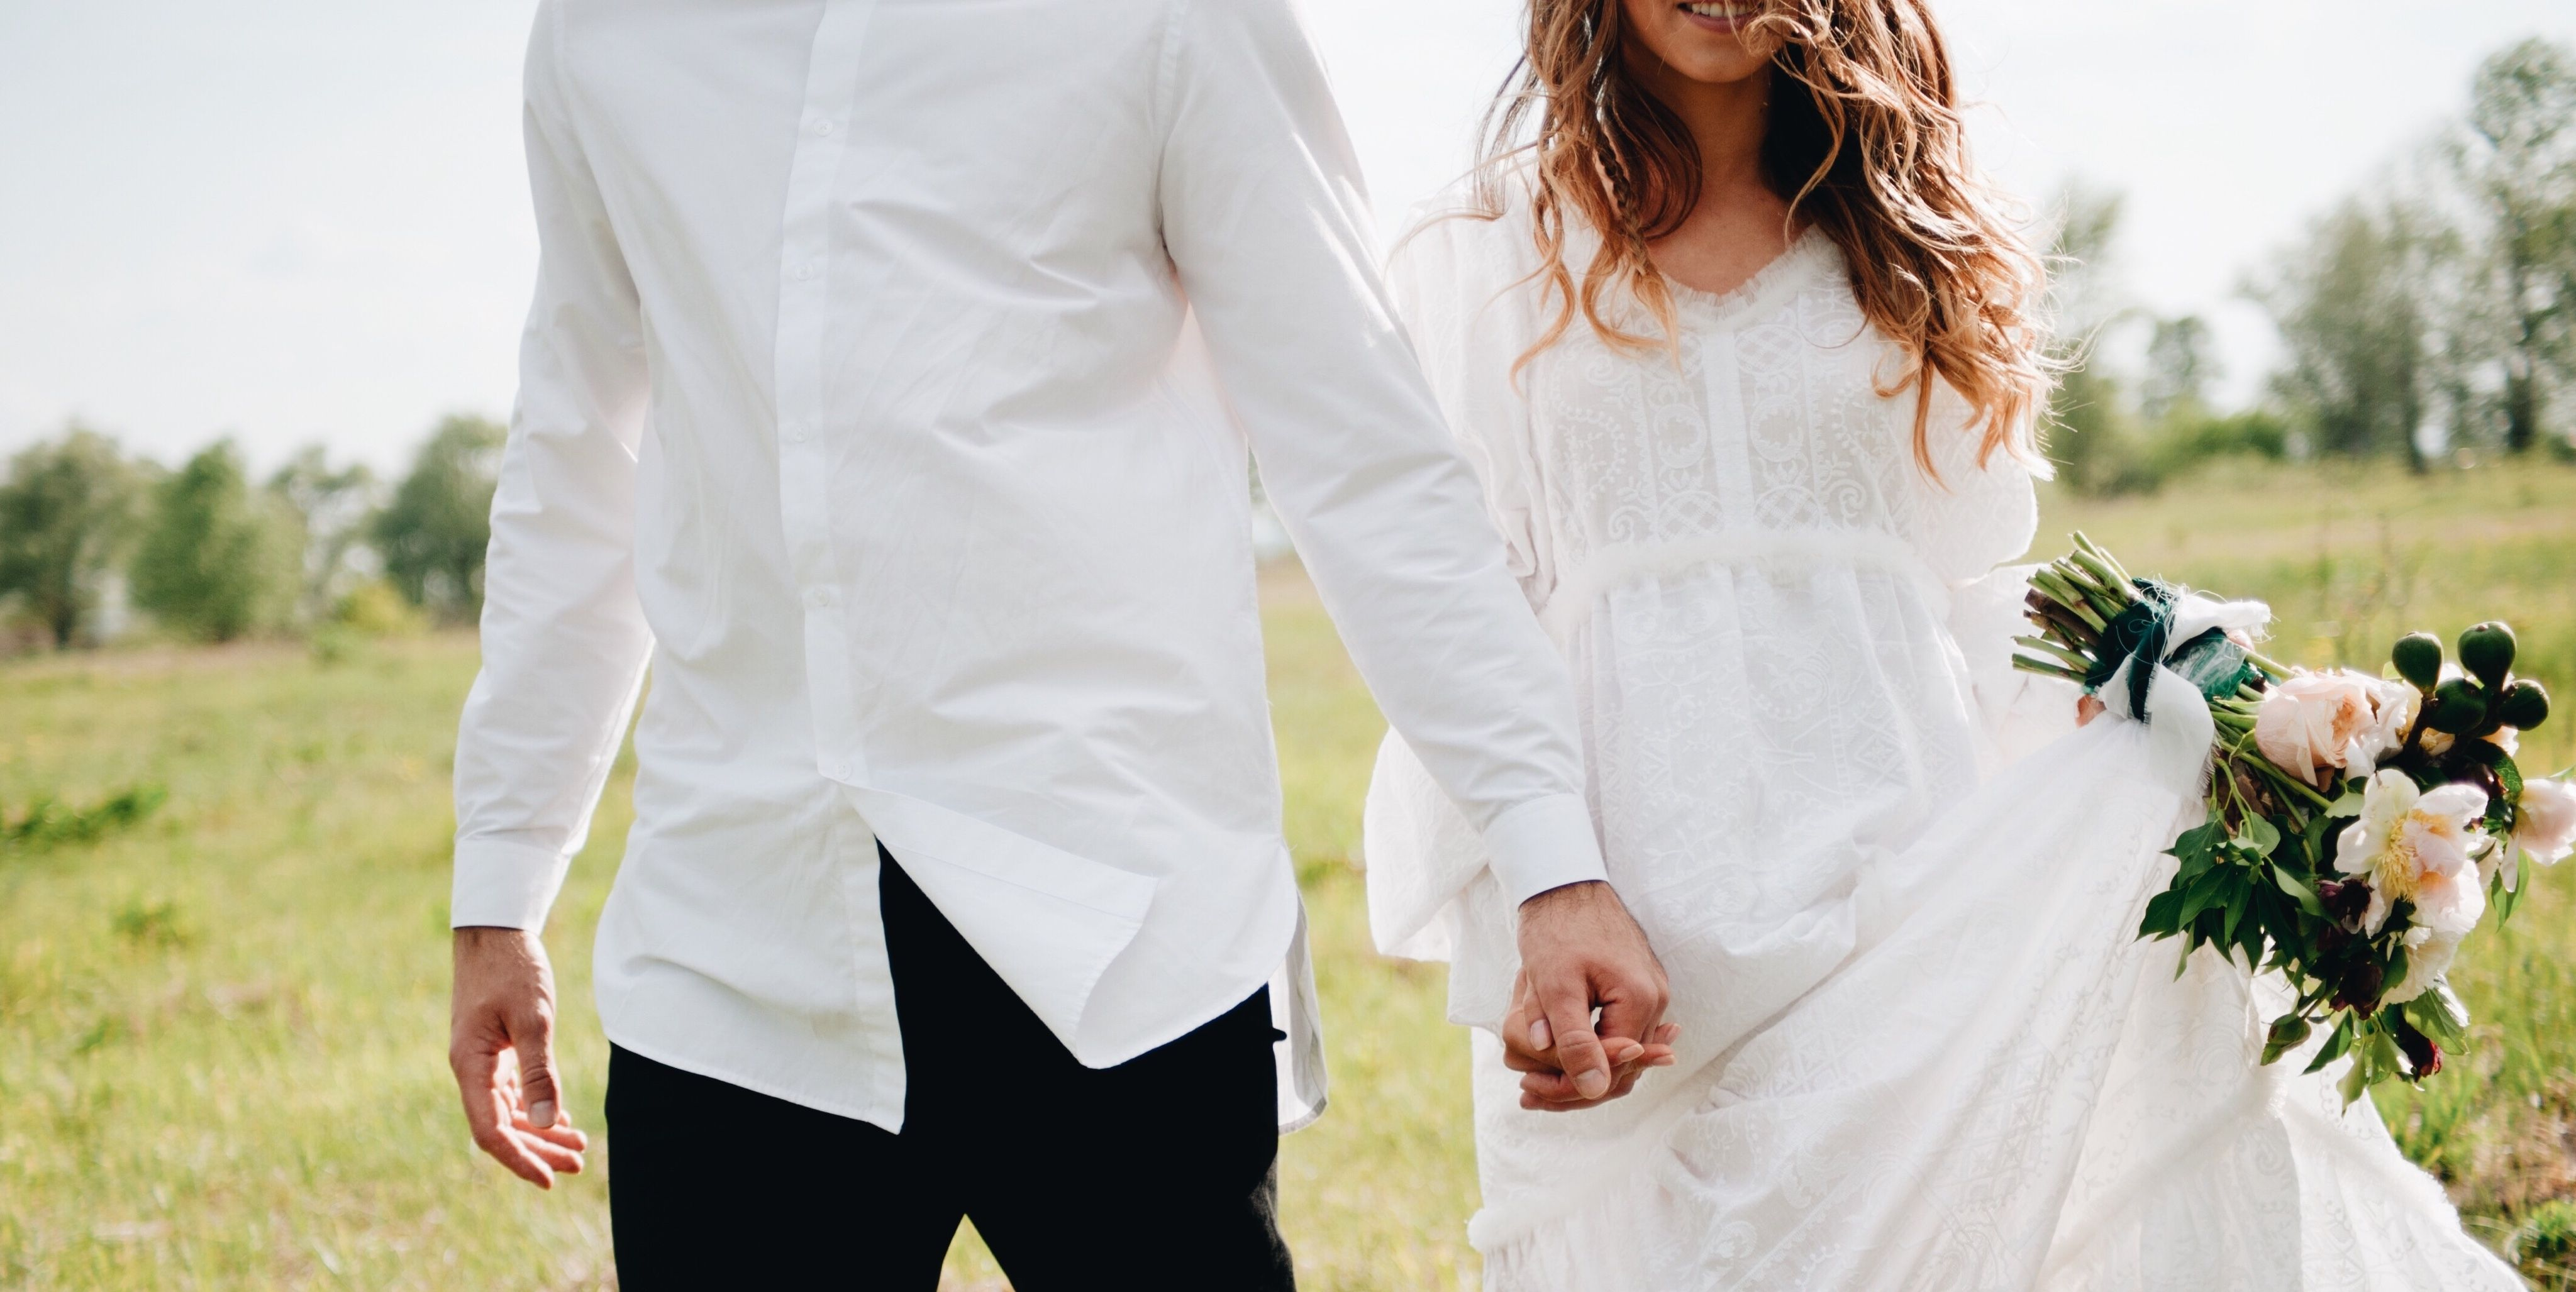 The biggest wedding trends of 2019 according to Pinterest